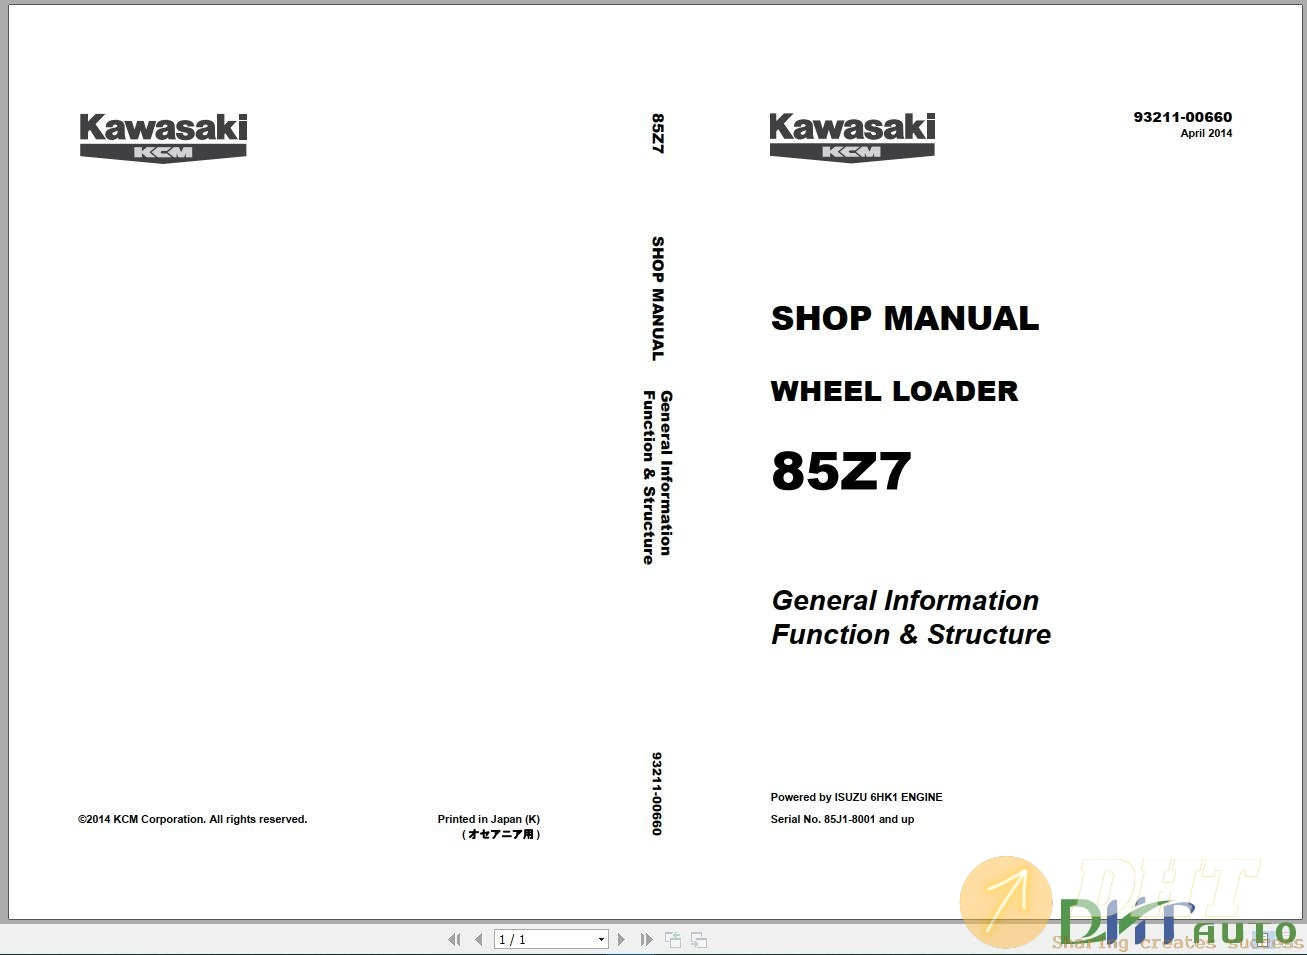 Kawasaki-Wheel-Loader-Workshop-Manual-Part-Manual-Full-Set-Update-2020-4.jpg